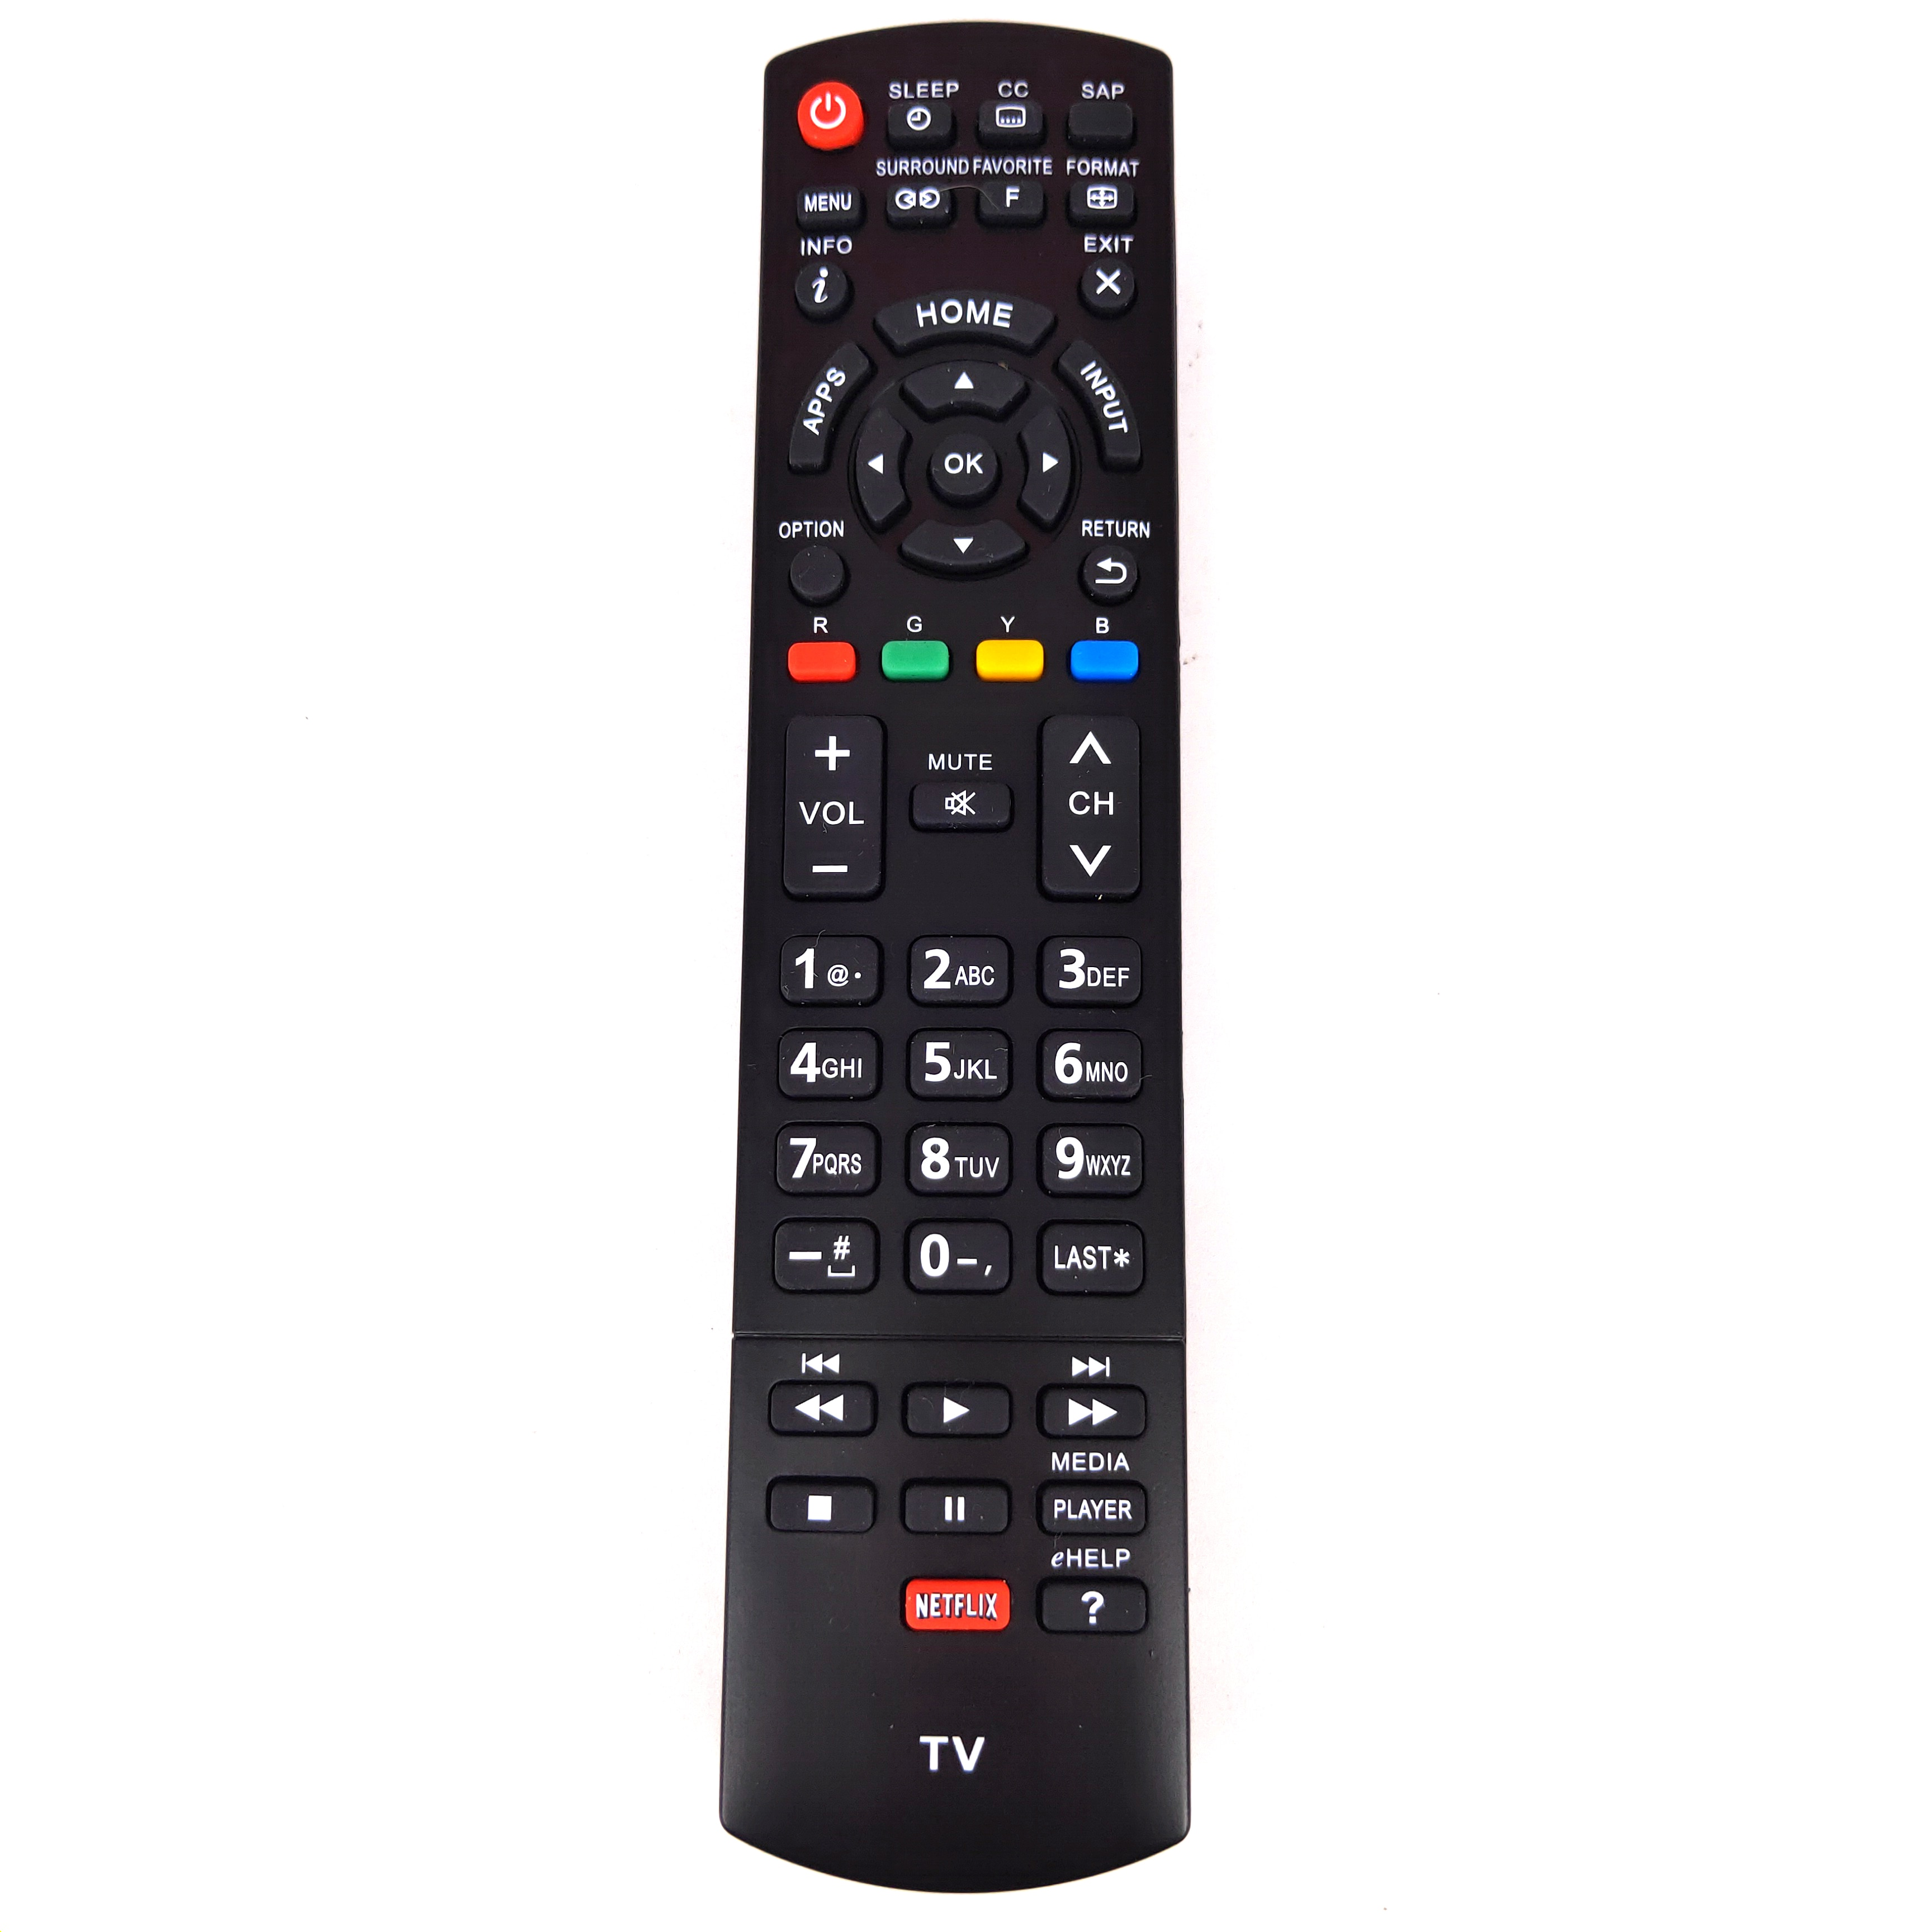 New Replacement for Panasonic TV Remote control with Netflix Fernbedienung